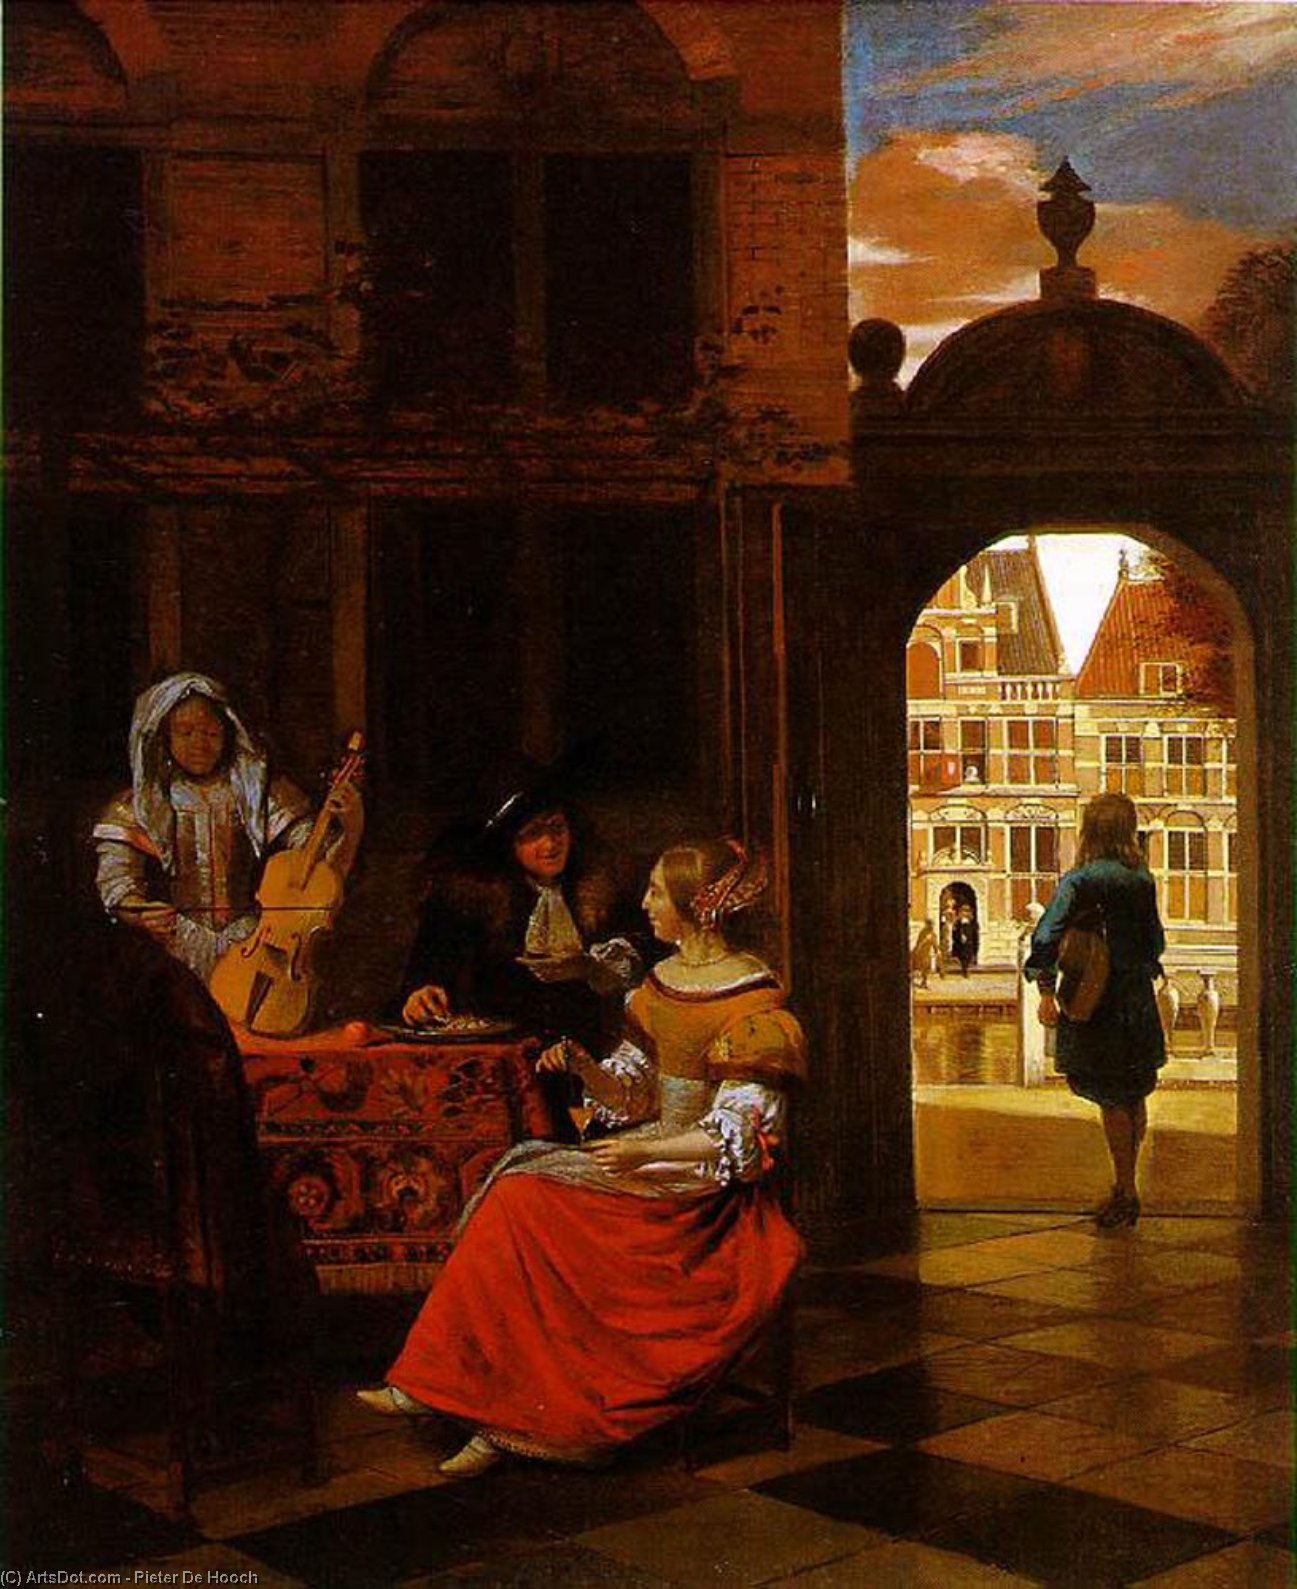 Wikioo.org - The Encyclopedia of Fine Arts - Painting, Artwork by Pieter De Hooch - Musical Party in a Courtyard